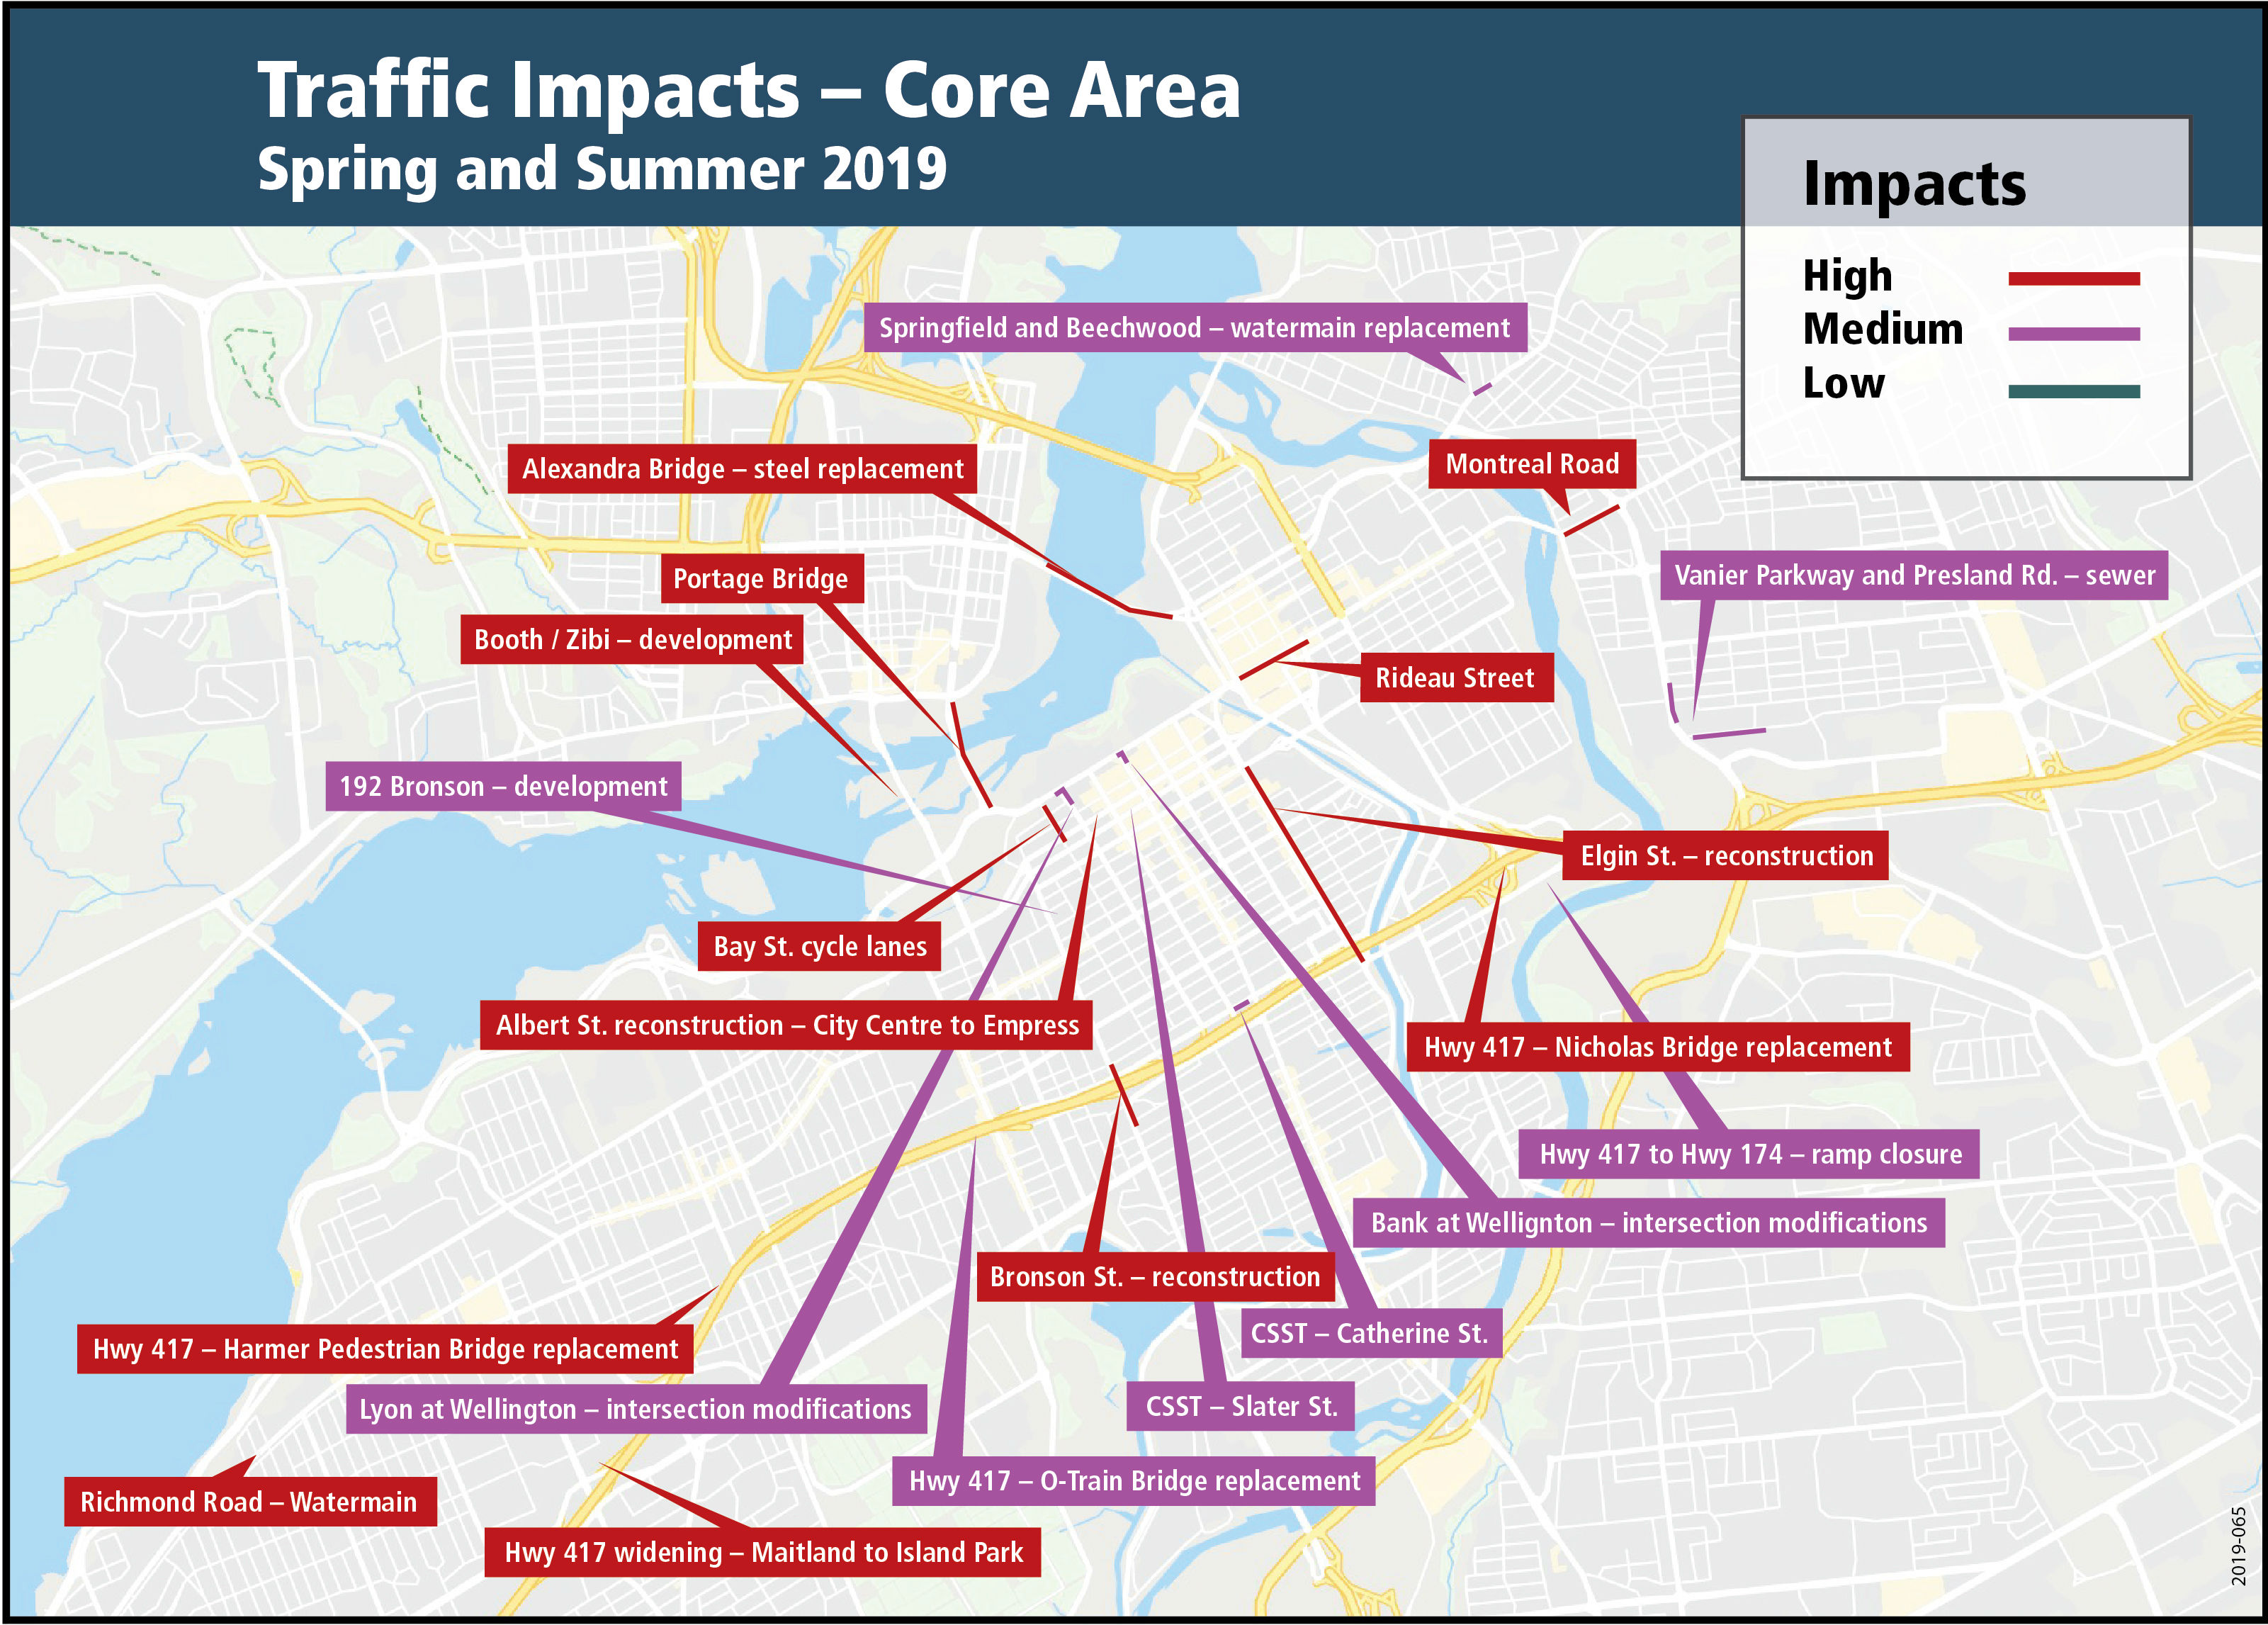 A map showing the low, medium and high traffic impacts for the spring/summer of 2019 as a result of construction work within the core area of Ottawa.